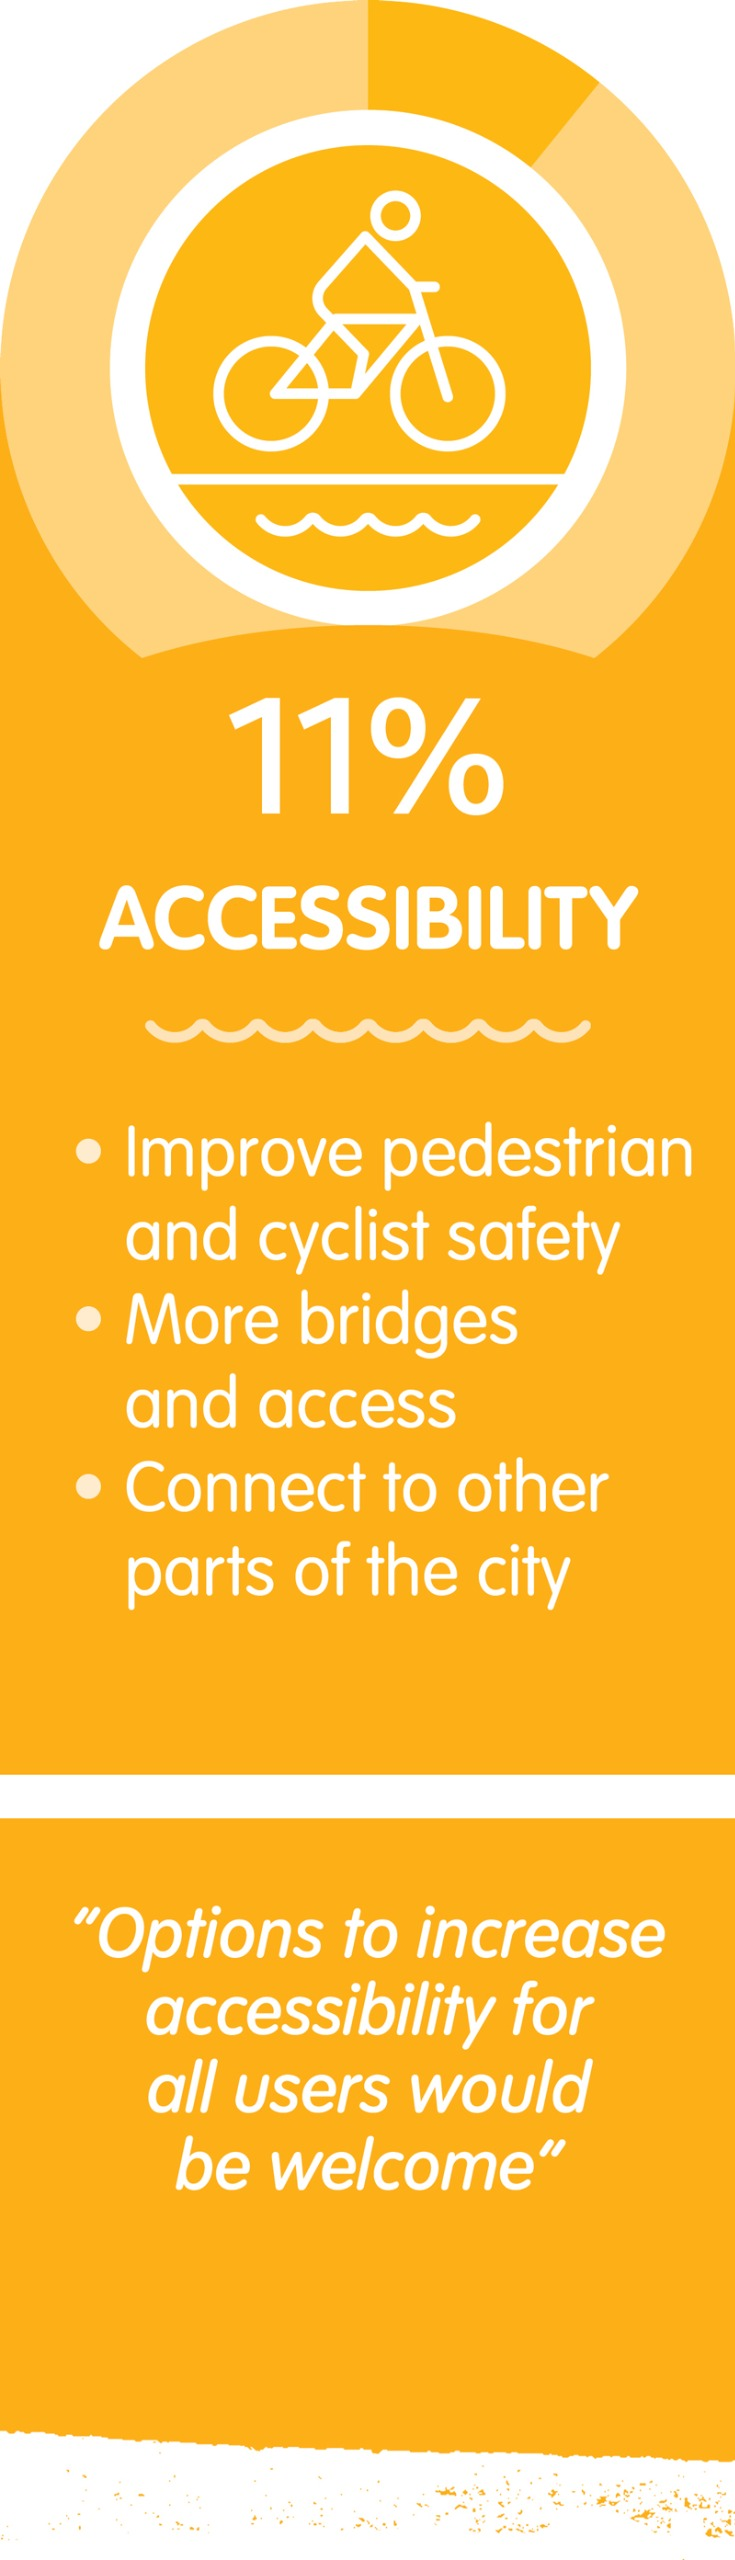 11 per cent of respondents supported improving accessibility as part of the project.